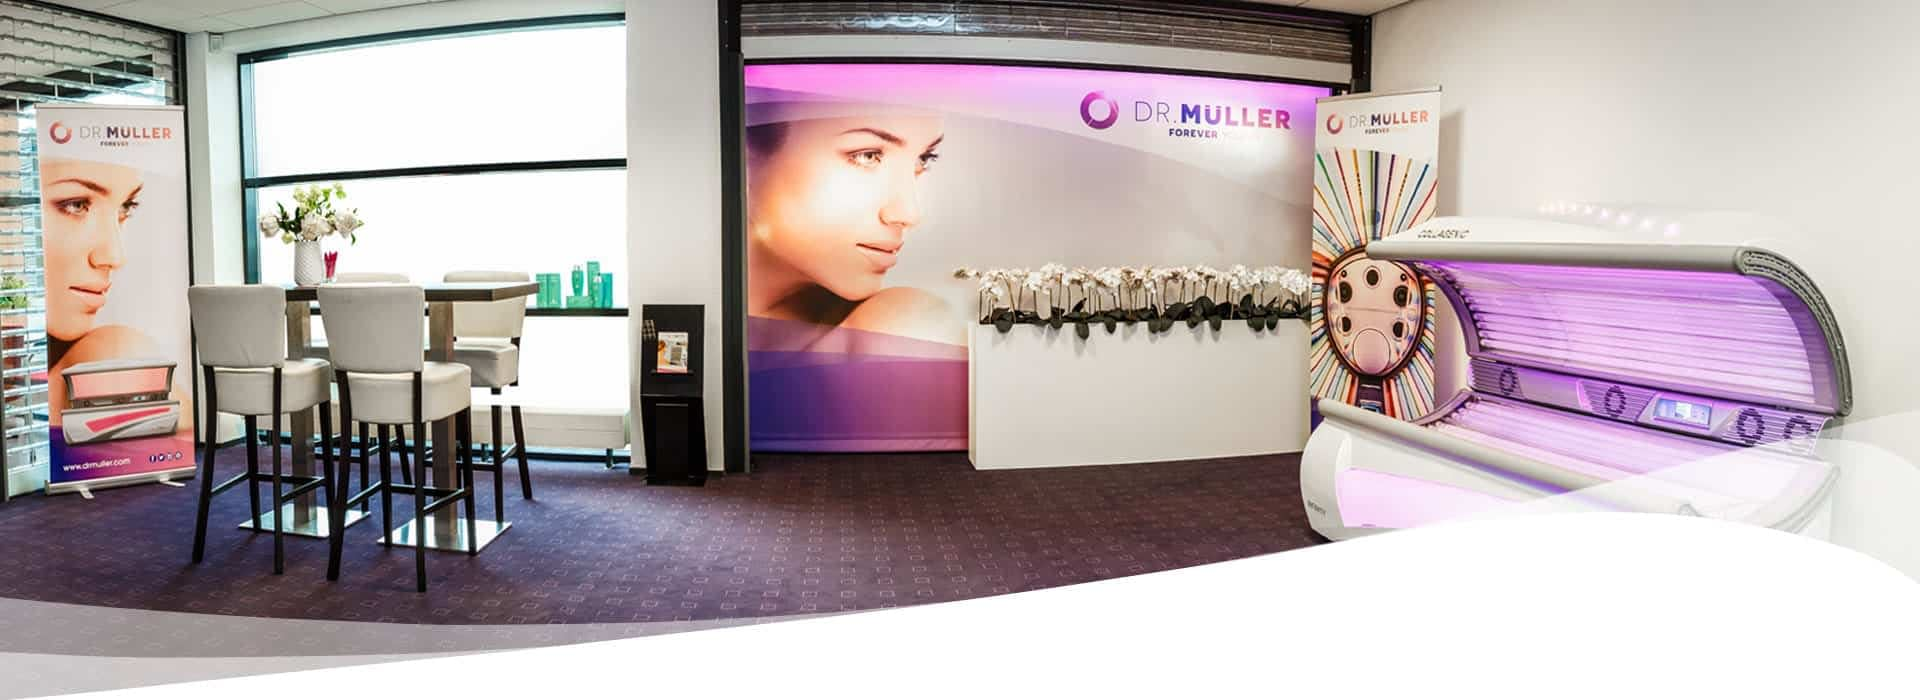 Dr. Muller showroom